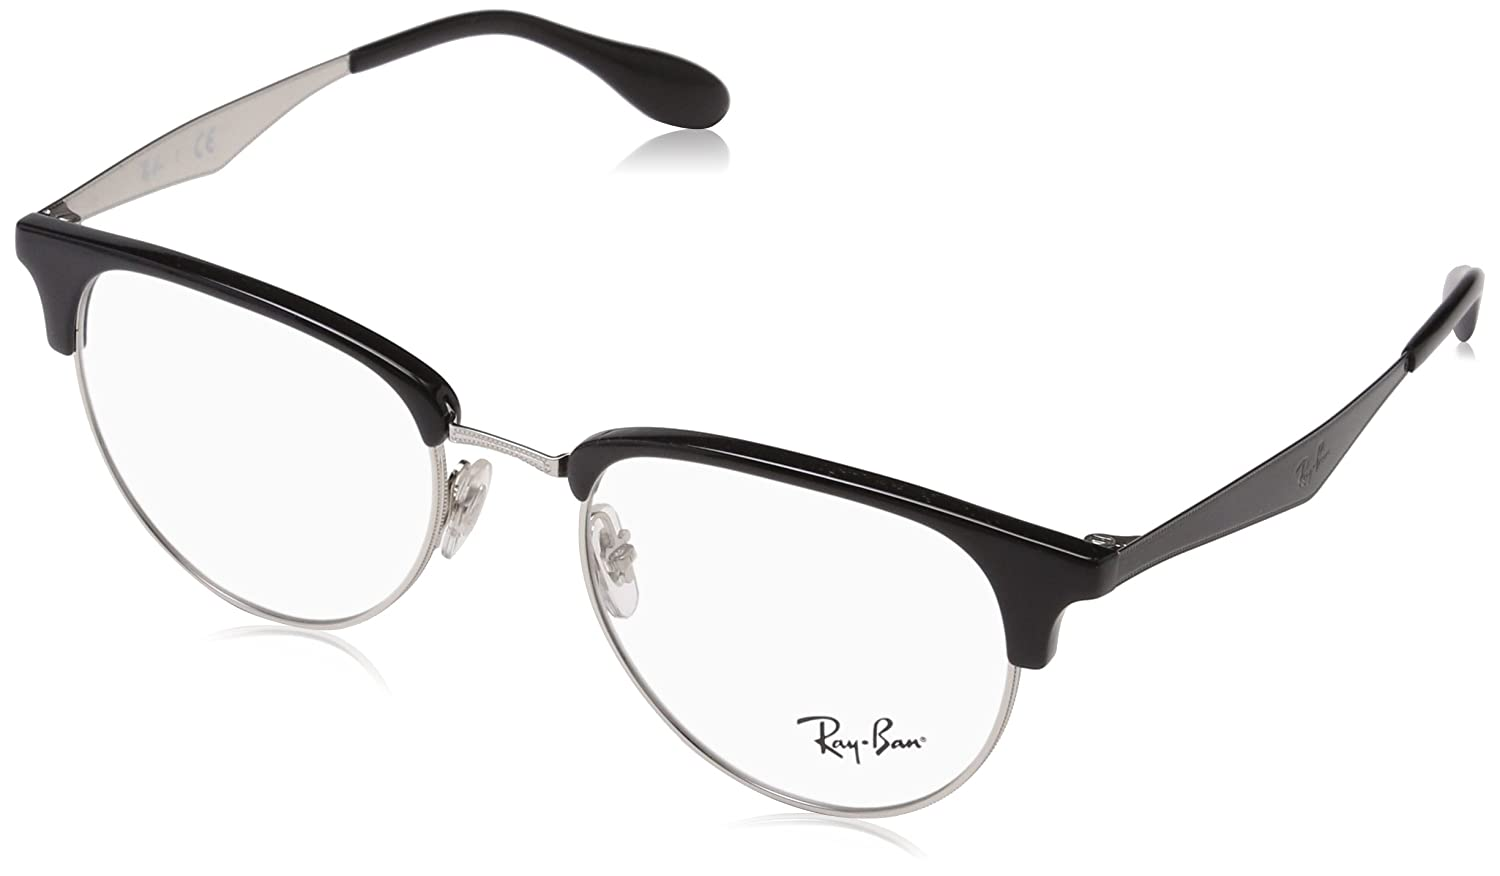 Ray-Ban rx6396 Brille in Silber RX6396 2932 51: Amazon.de: Bekleidung